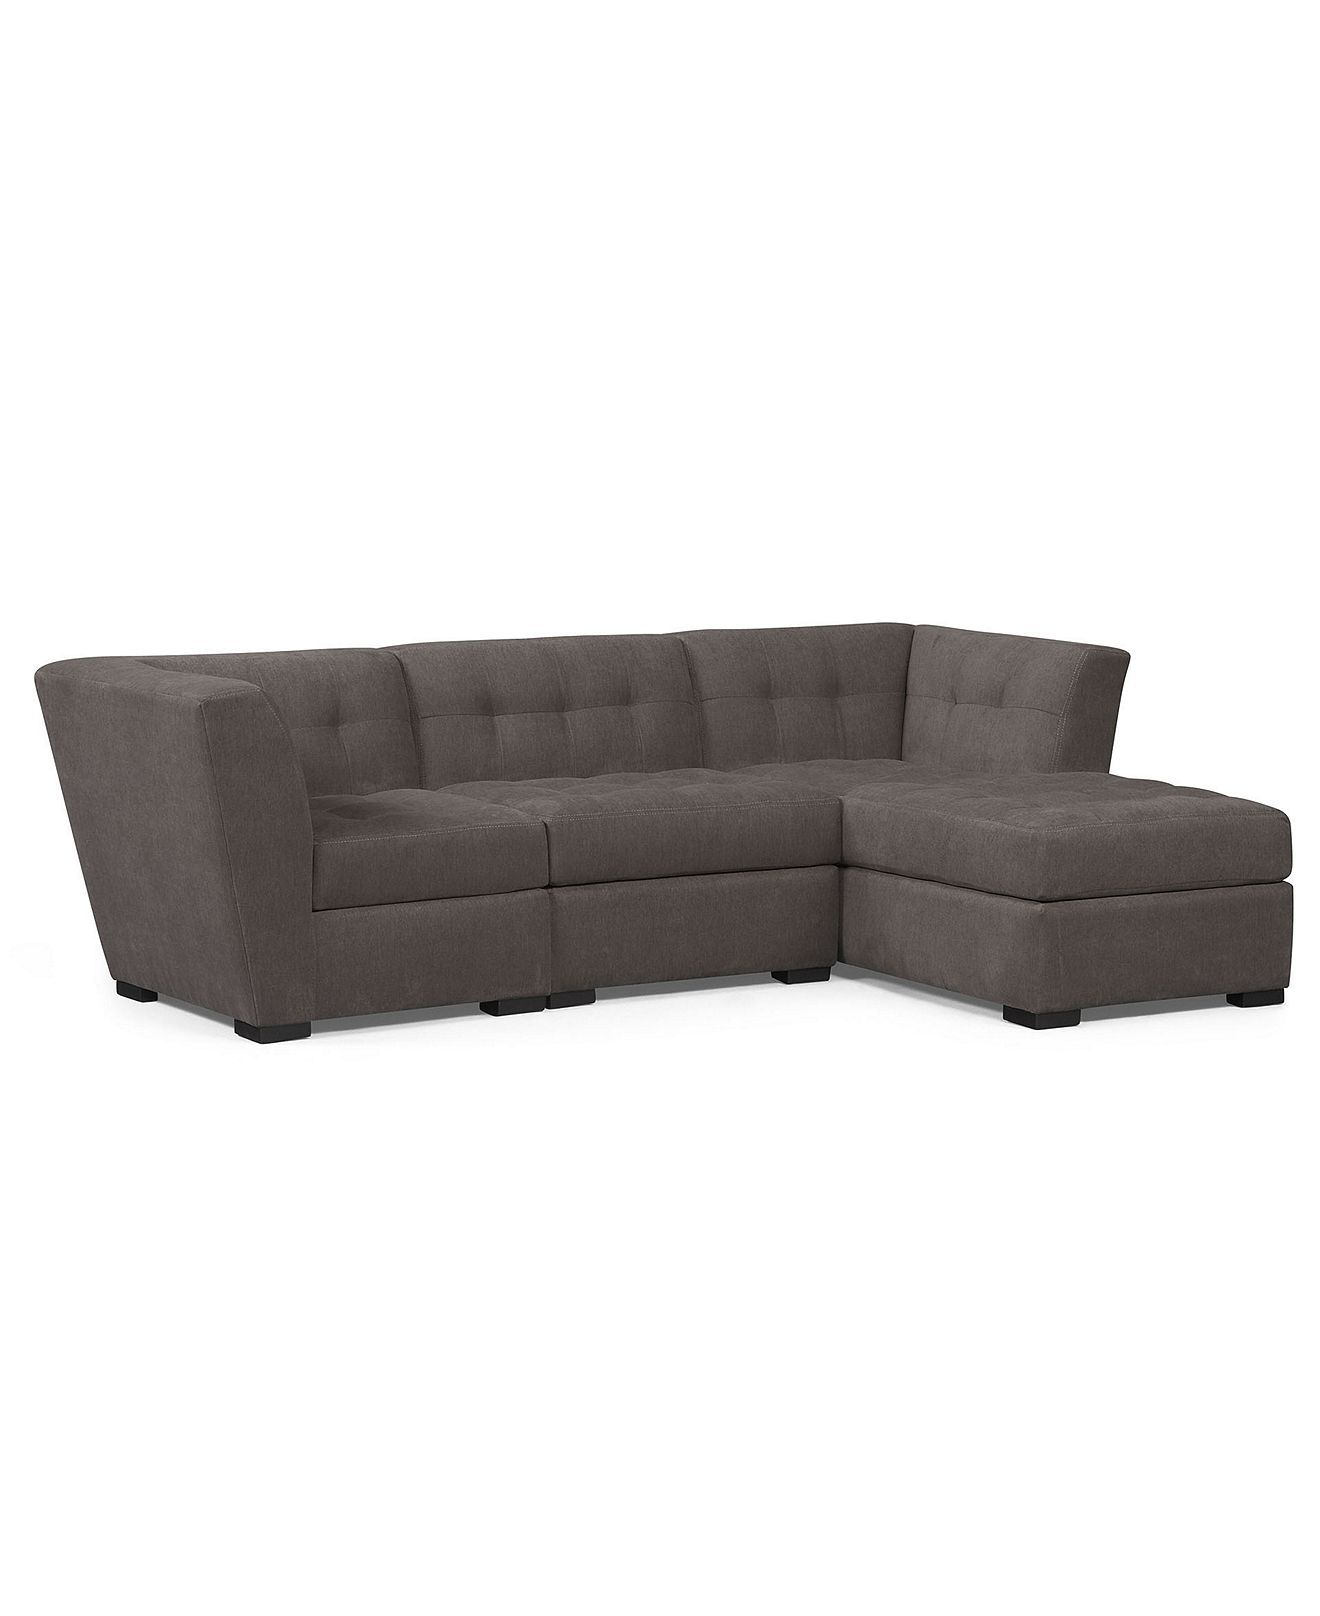 Roxanne Fabric Modular Sectional Sofa, 3 Piece (Square ...